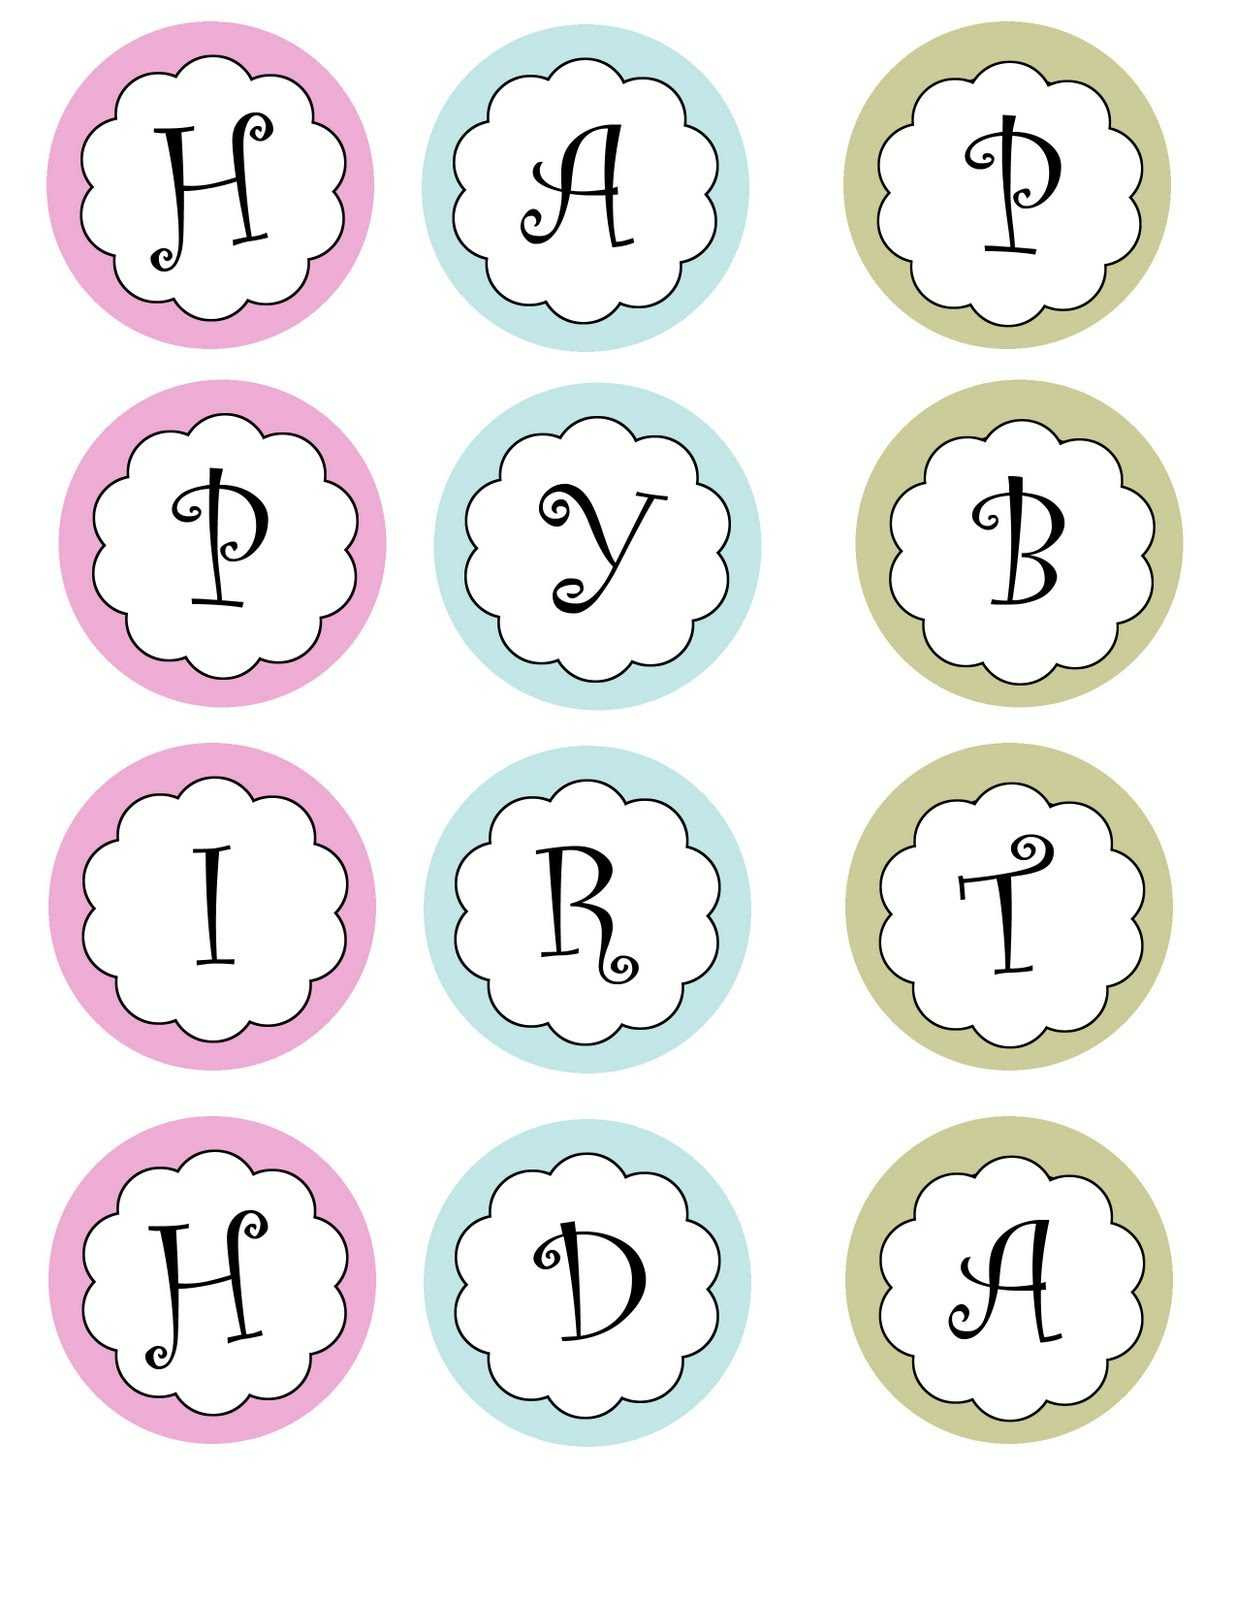 Free Printable Happy Birthday Banner Templates   Theveliger With Regard To Free Printable Party Banner Templates